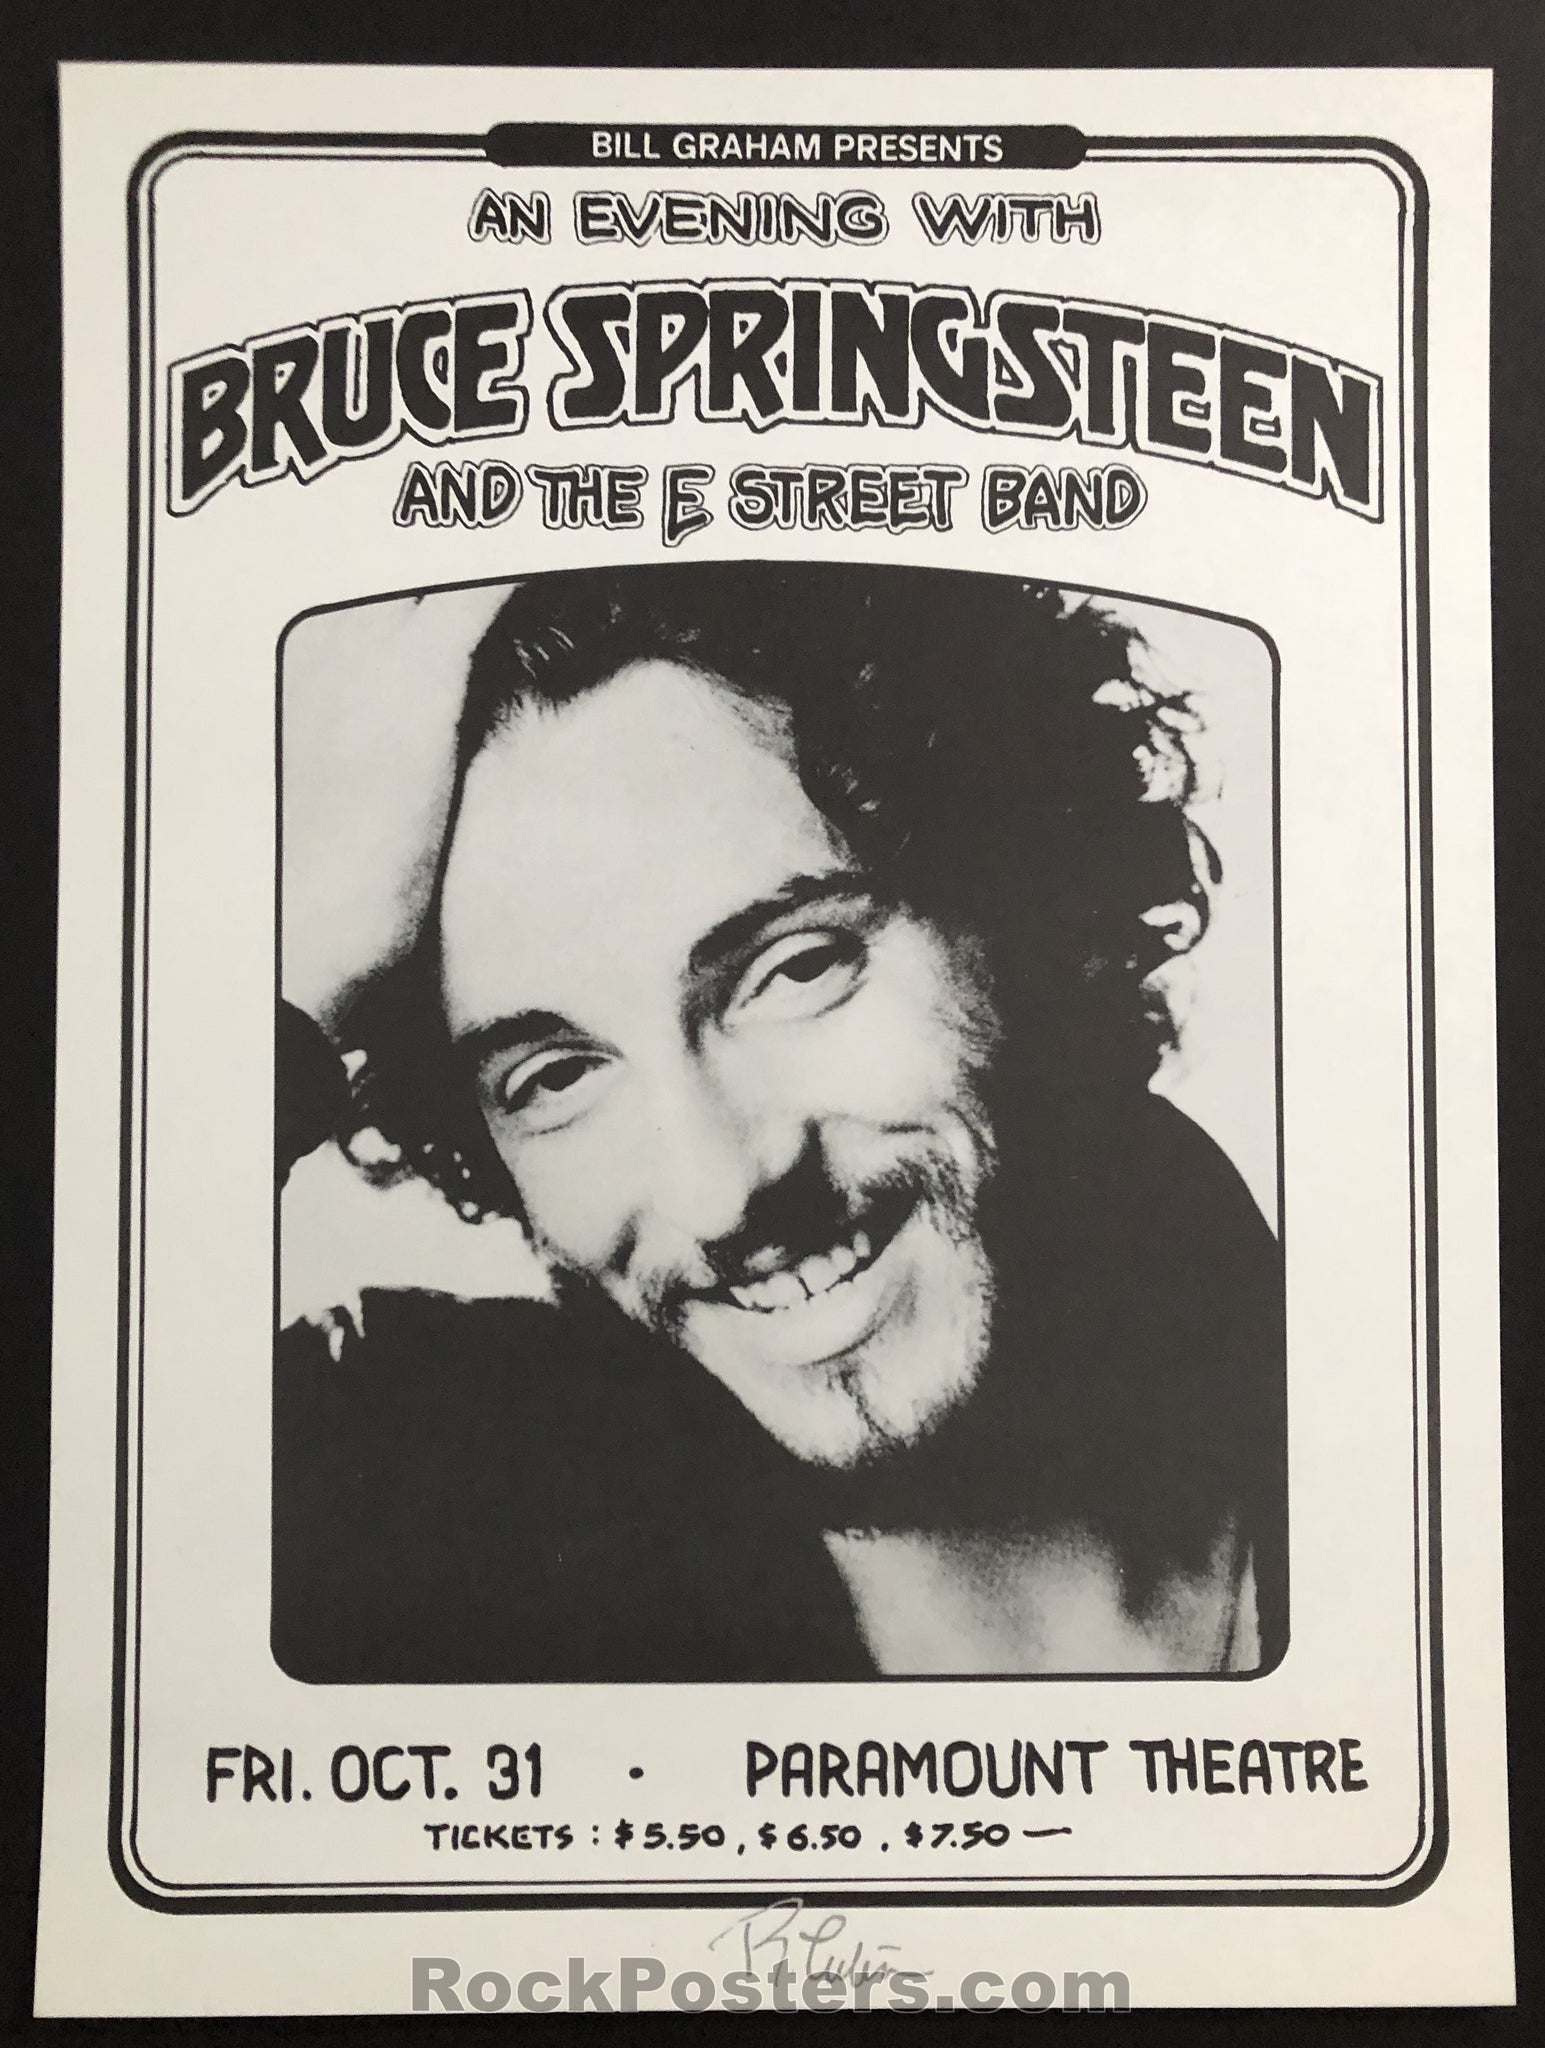 AUCTION - Bruce Springsteen - Oakland 1975 - Signed Original Randy Tuten Poster - Condition - Mint